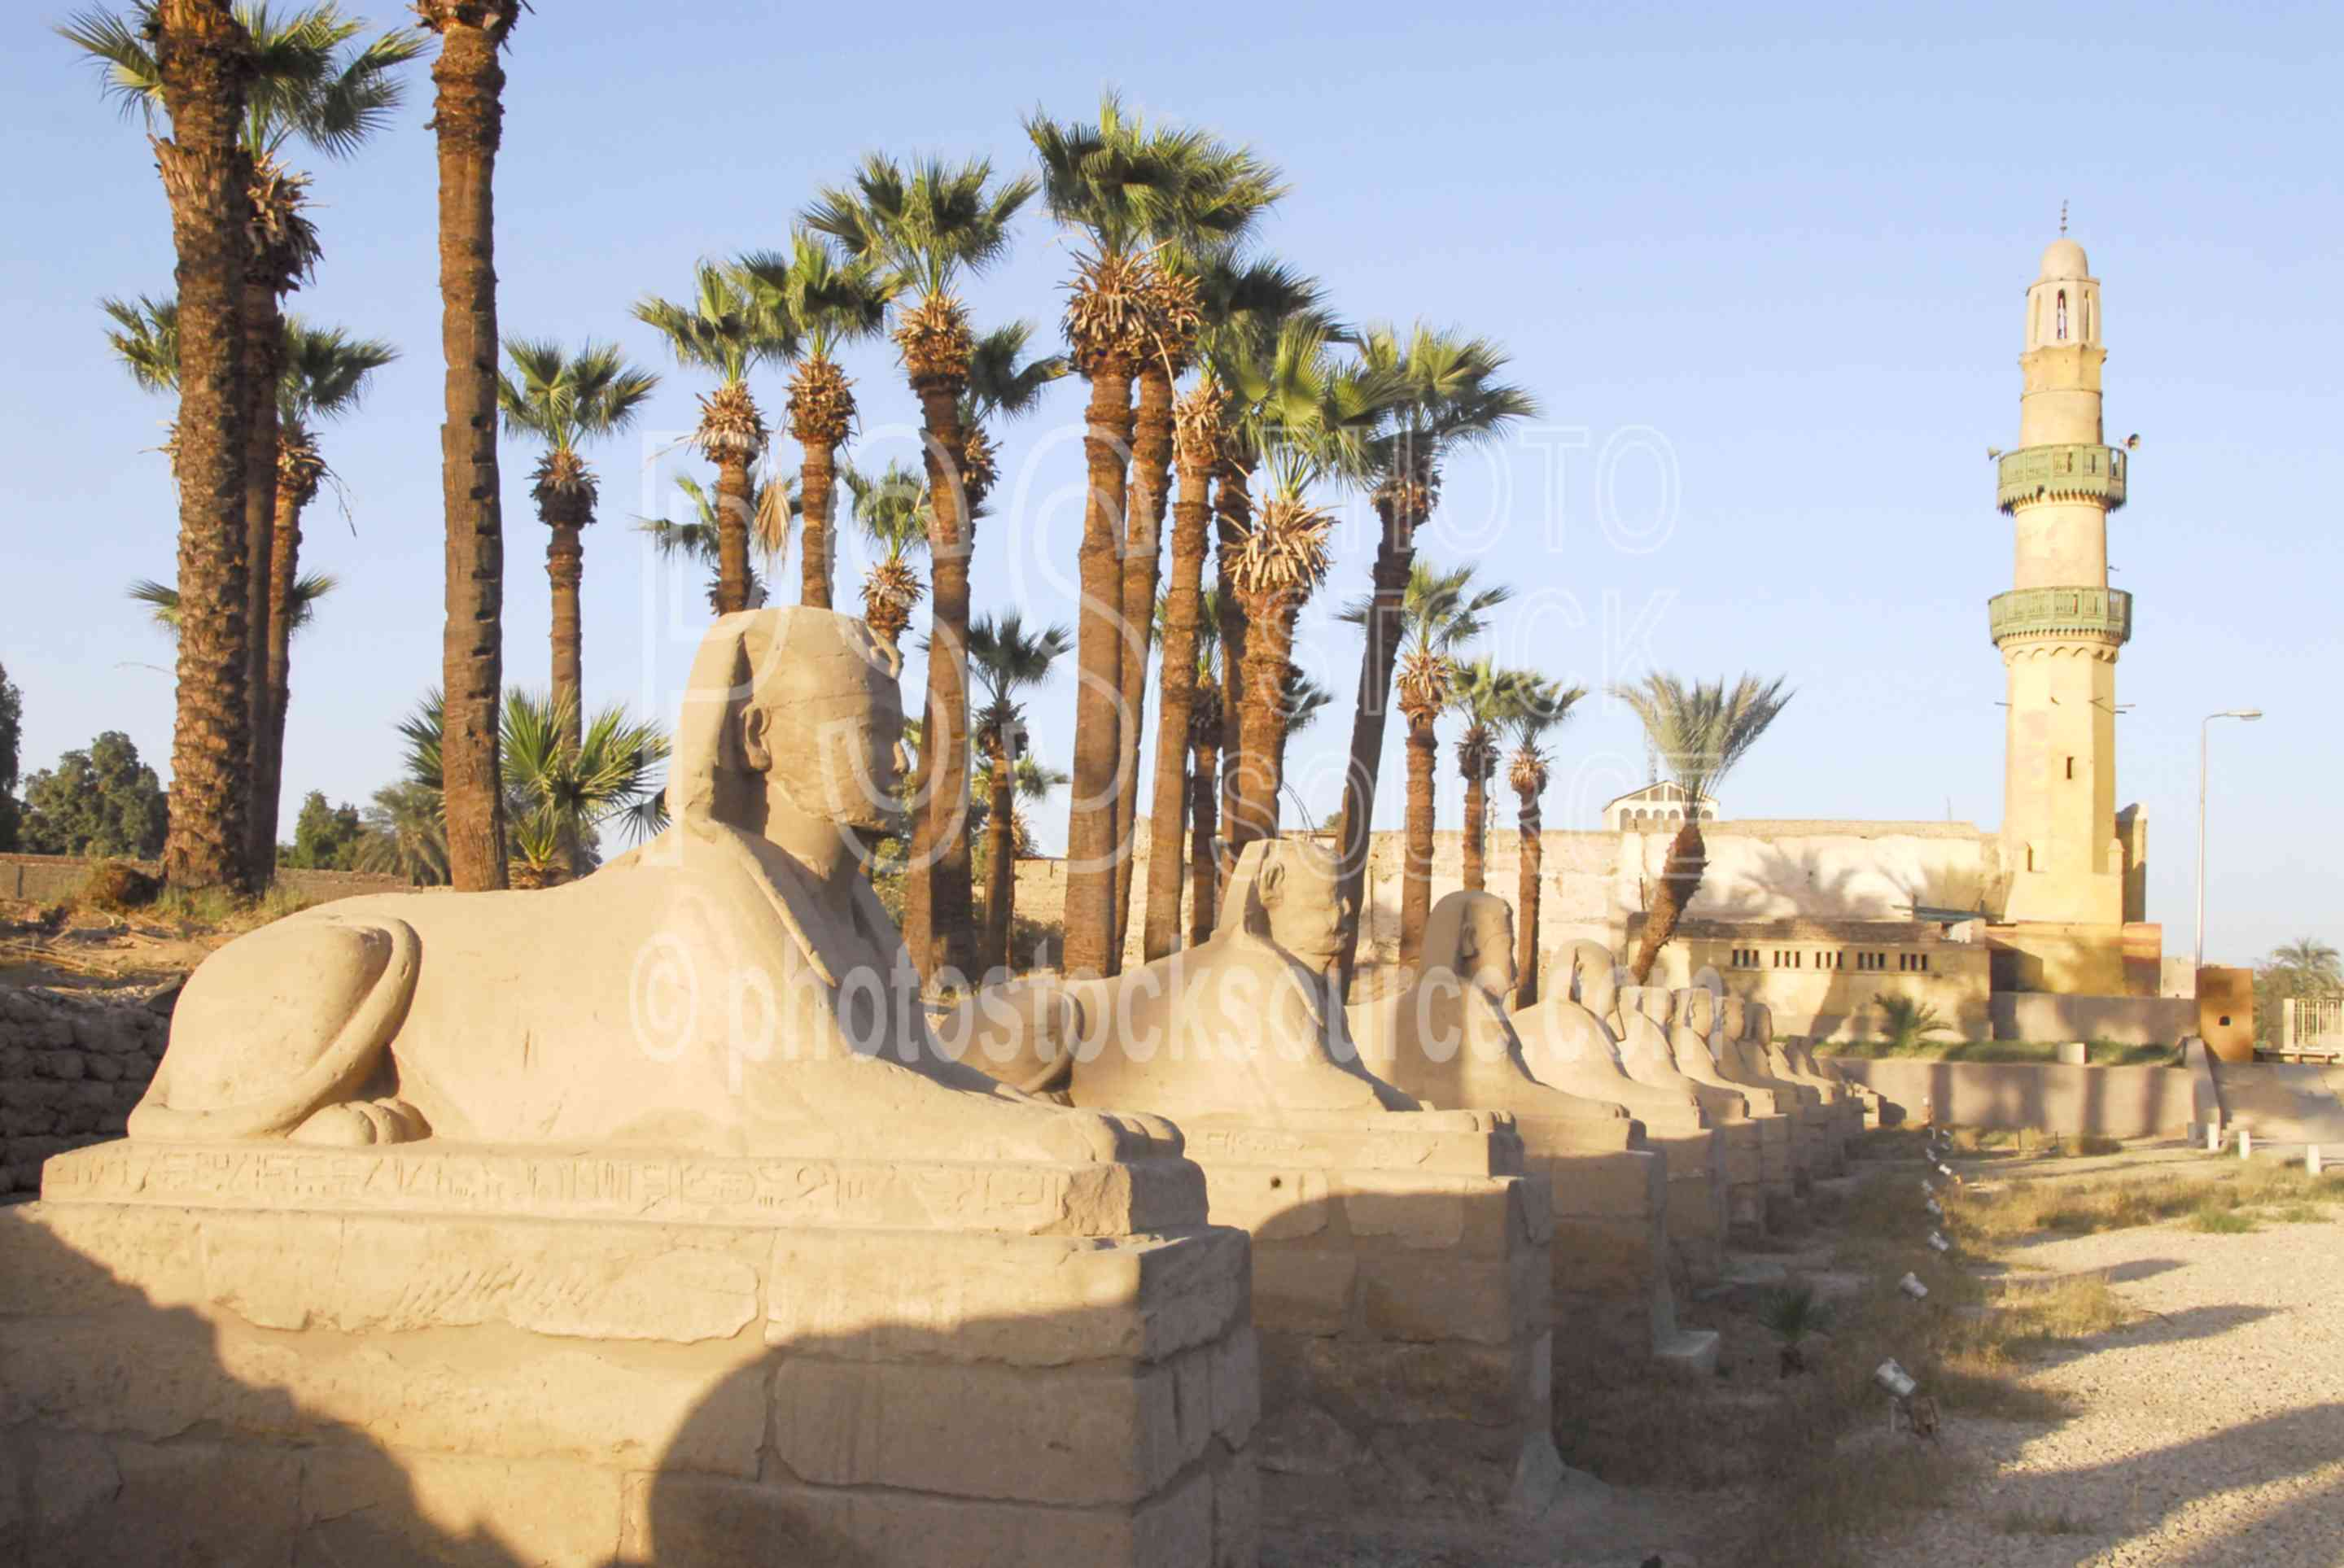 Avenue of the Sphinxes,temple,sphinx,statues,sacred way,mosque,architecture,temples